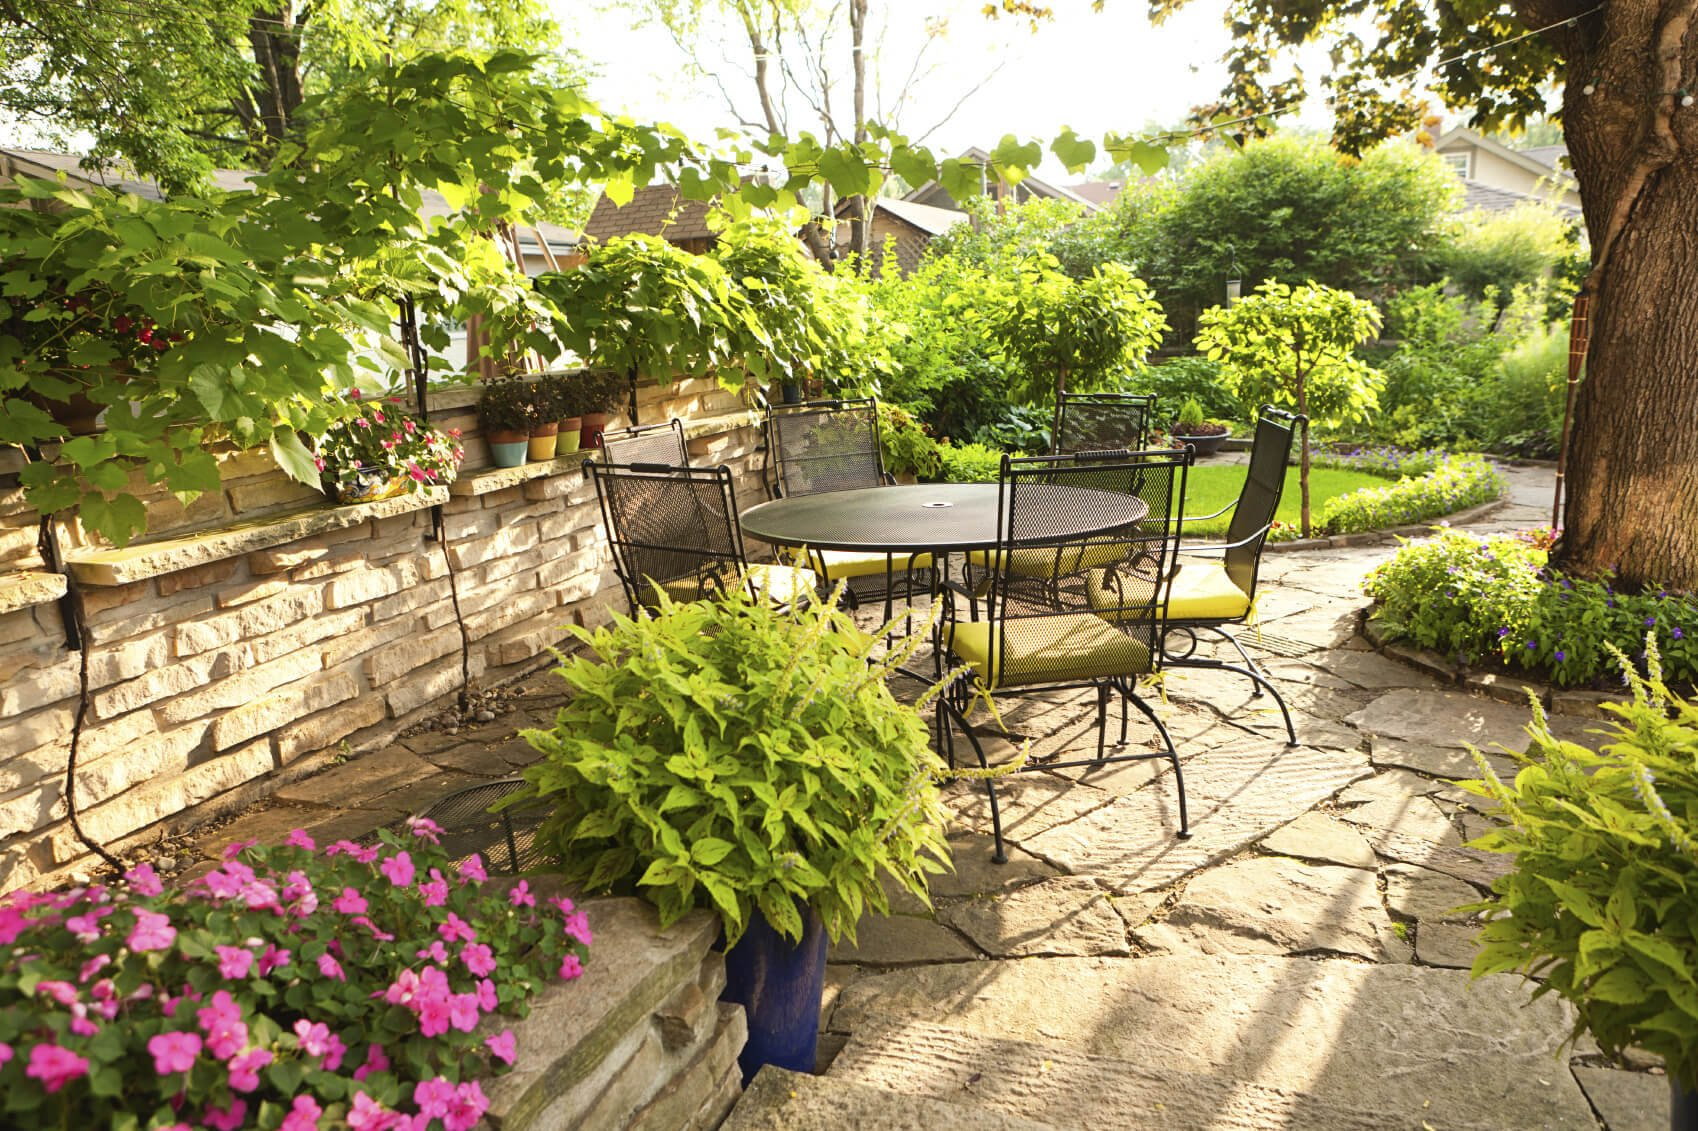 The great thing about small cohesive gardens is that they are easily organized. Your small garden will look precise and purposeful with less effort than it would take for a large garden.